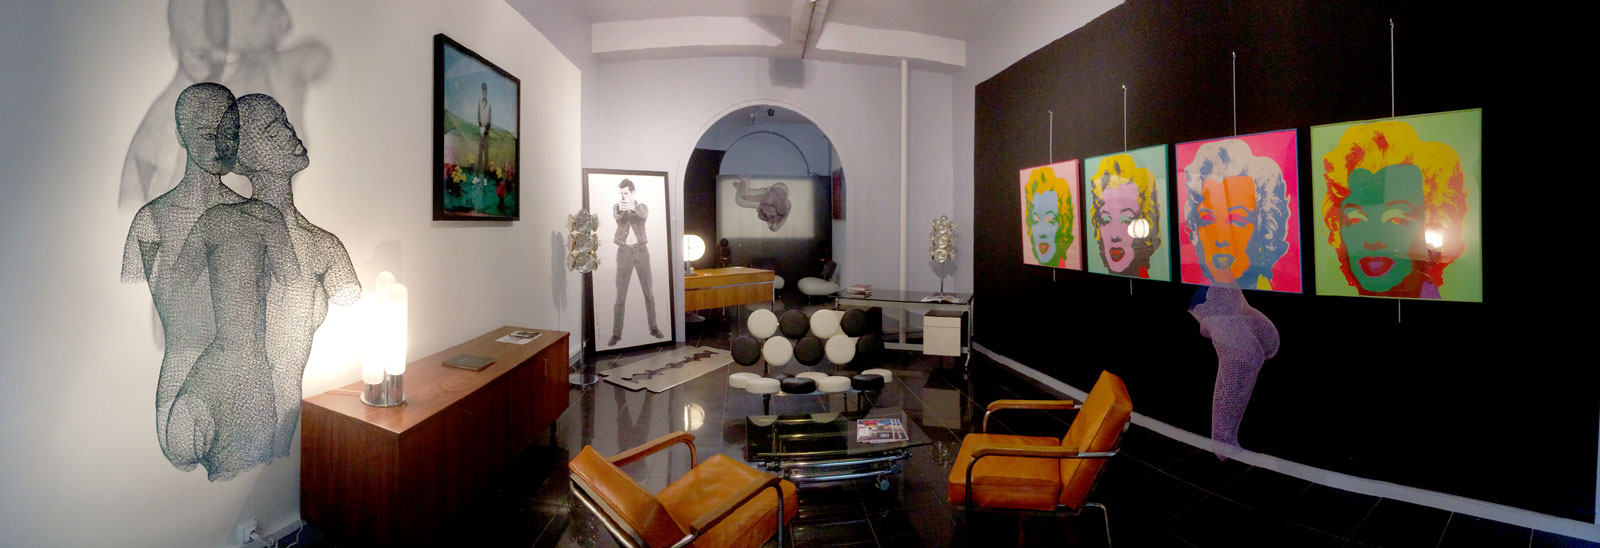 39Galerie - ambiance Andy Warhol